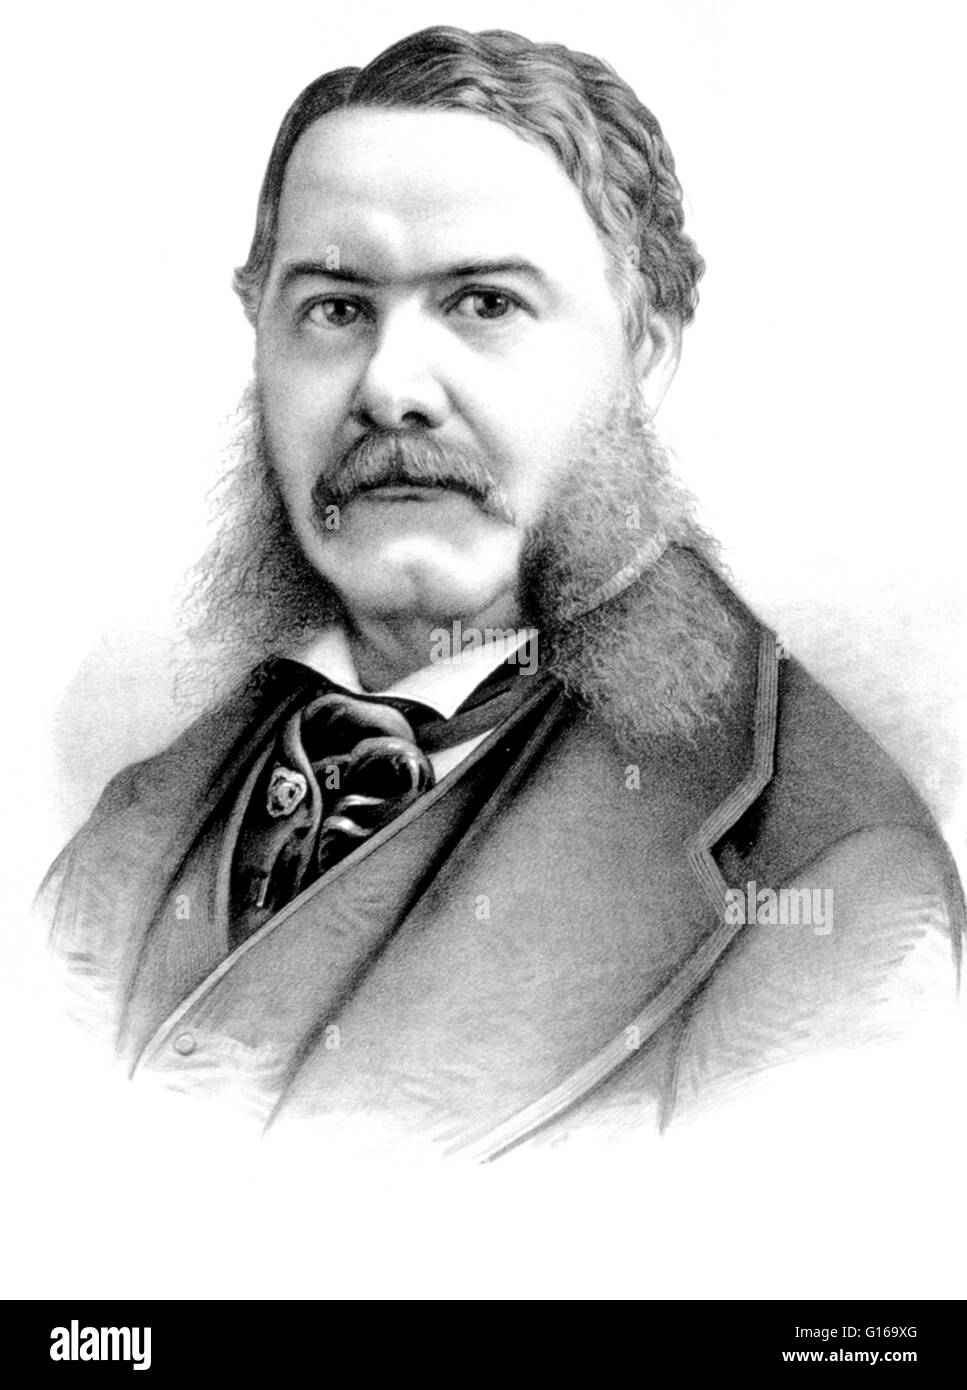 Chester Alan Arthur (October 5, 1829 - November 18, 1886) became the 21st President of the United States (1881-85) - Stock Image